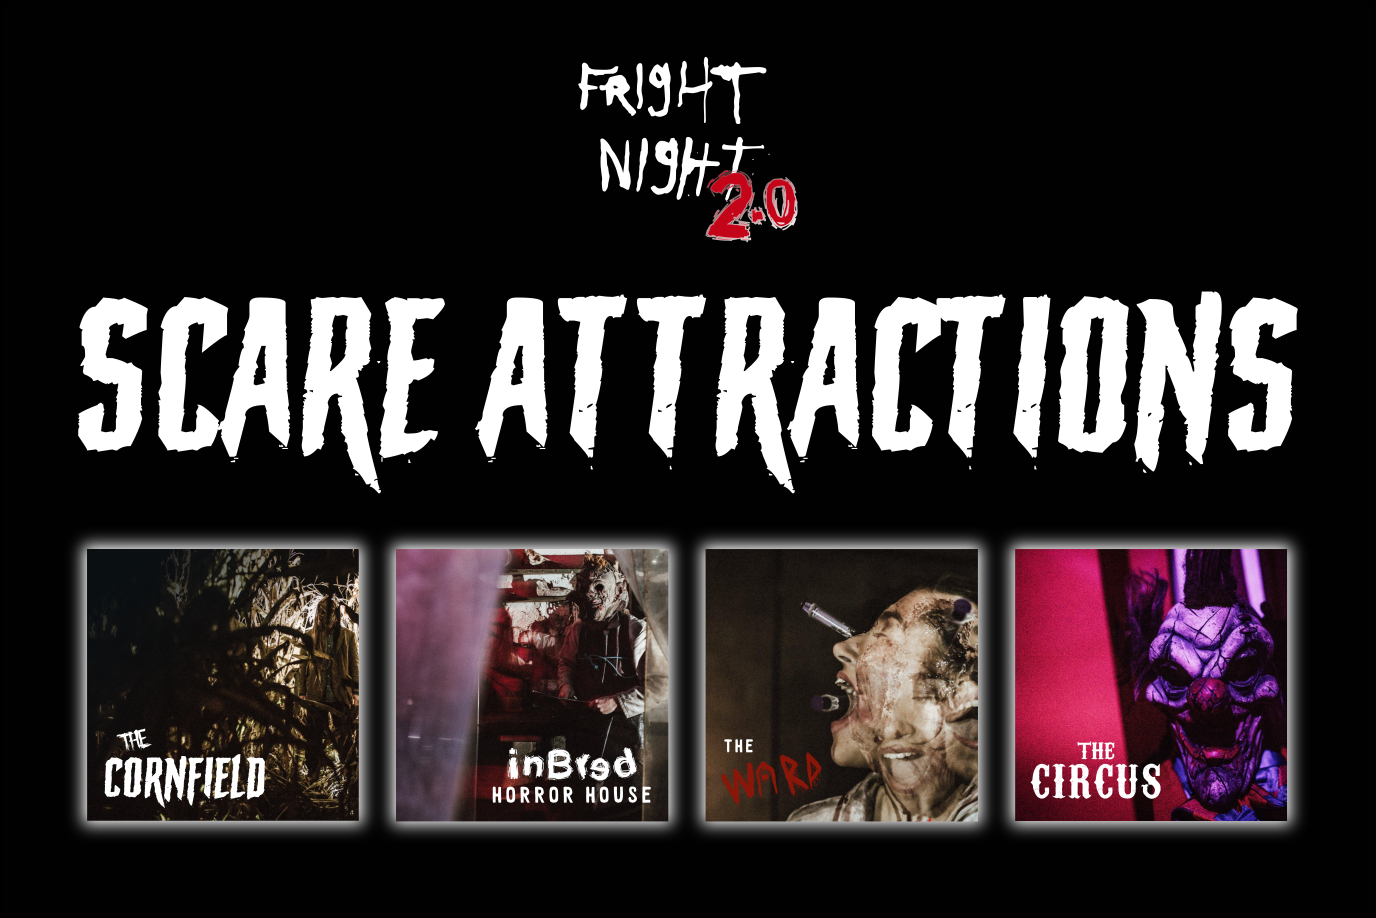 FN 2.0   Scare Attraction image